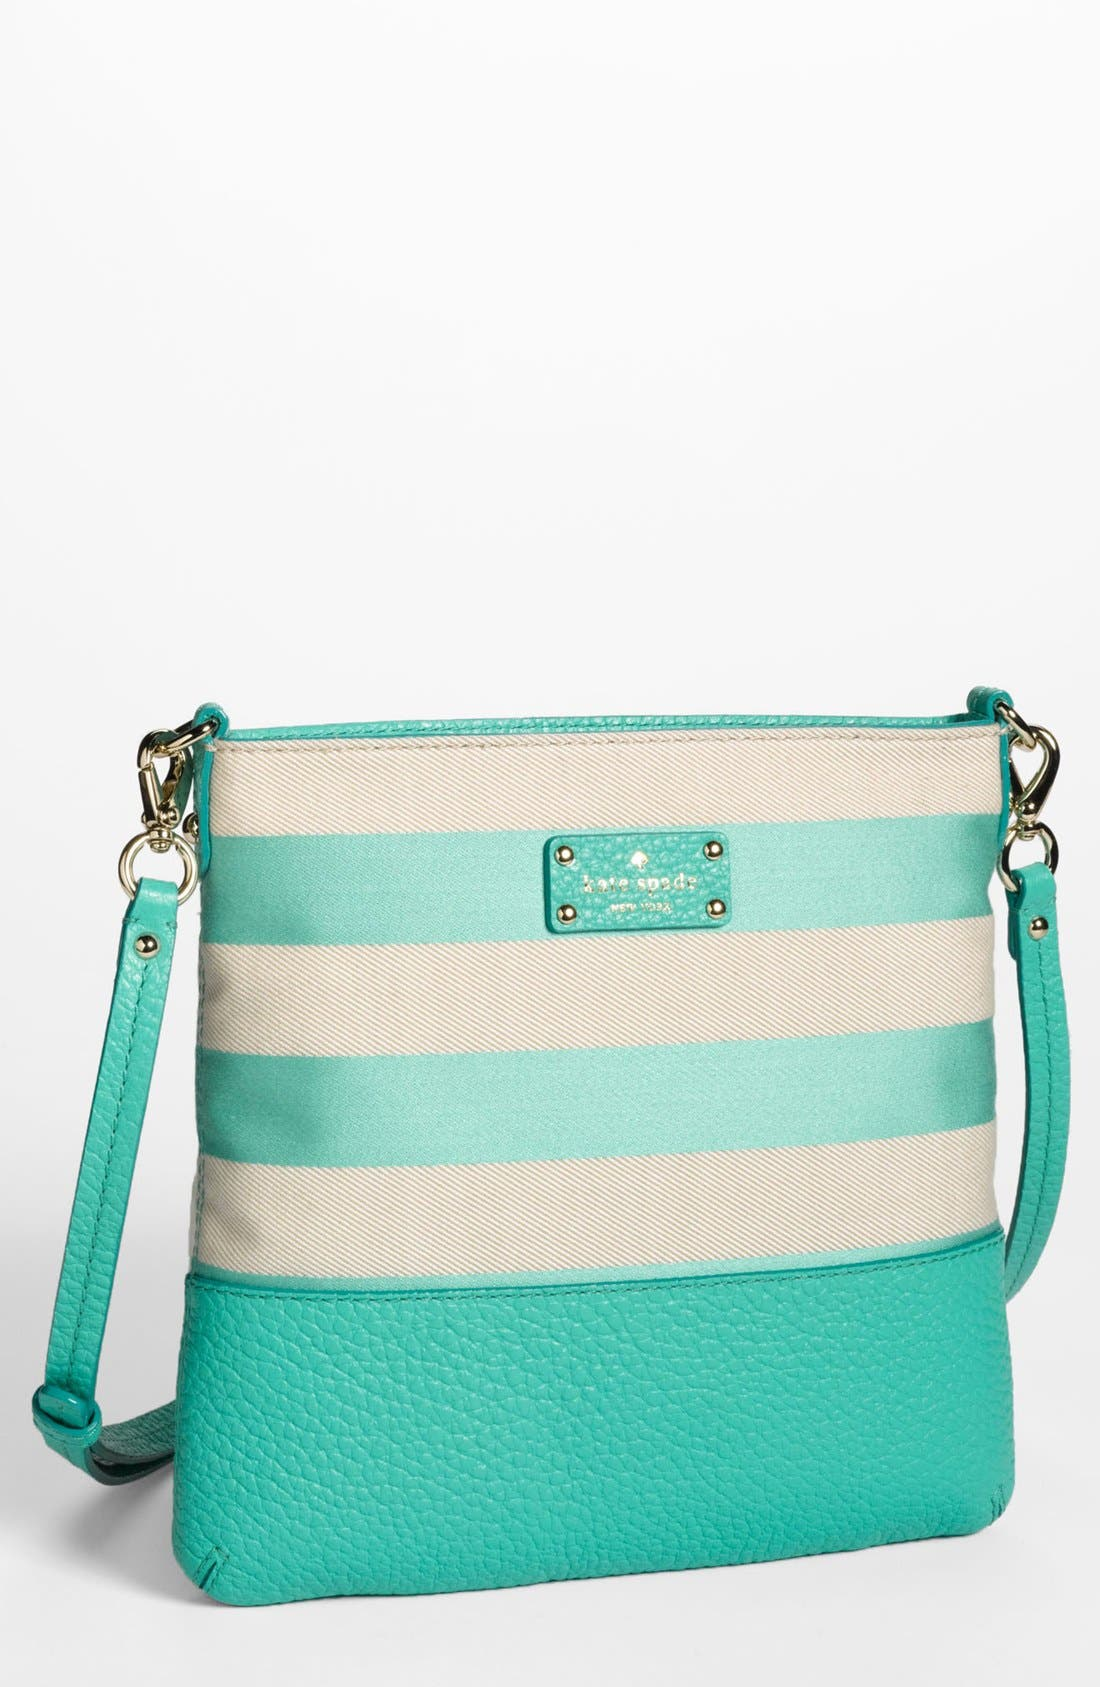 Main Image - kate spade new york 'grove court stripe - cora' crossbody bag